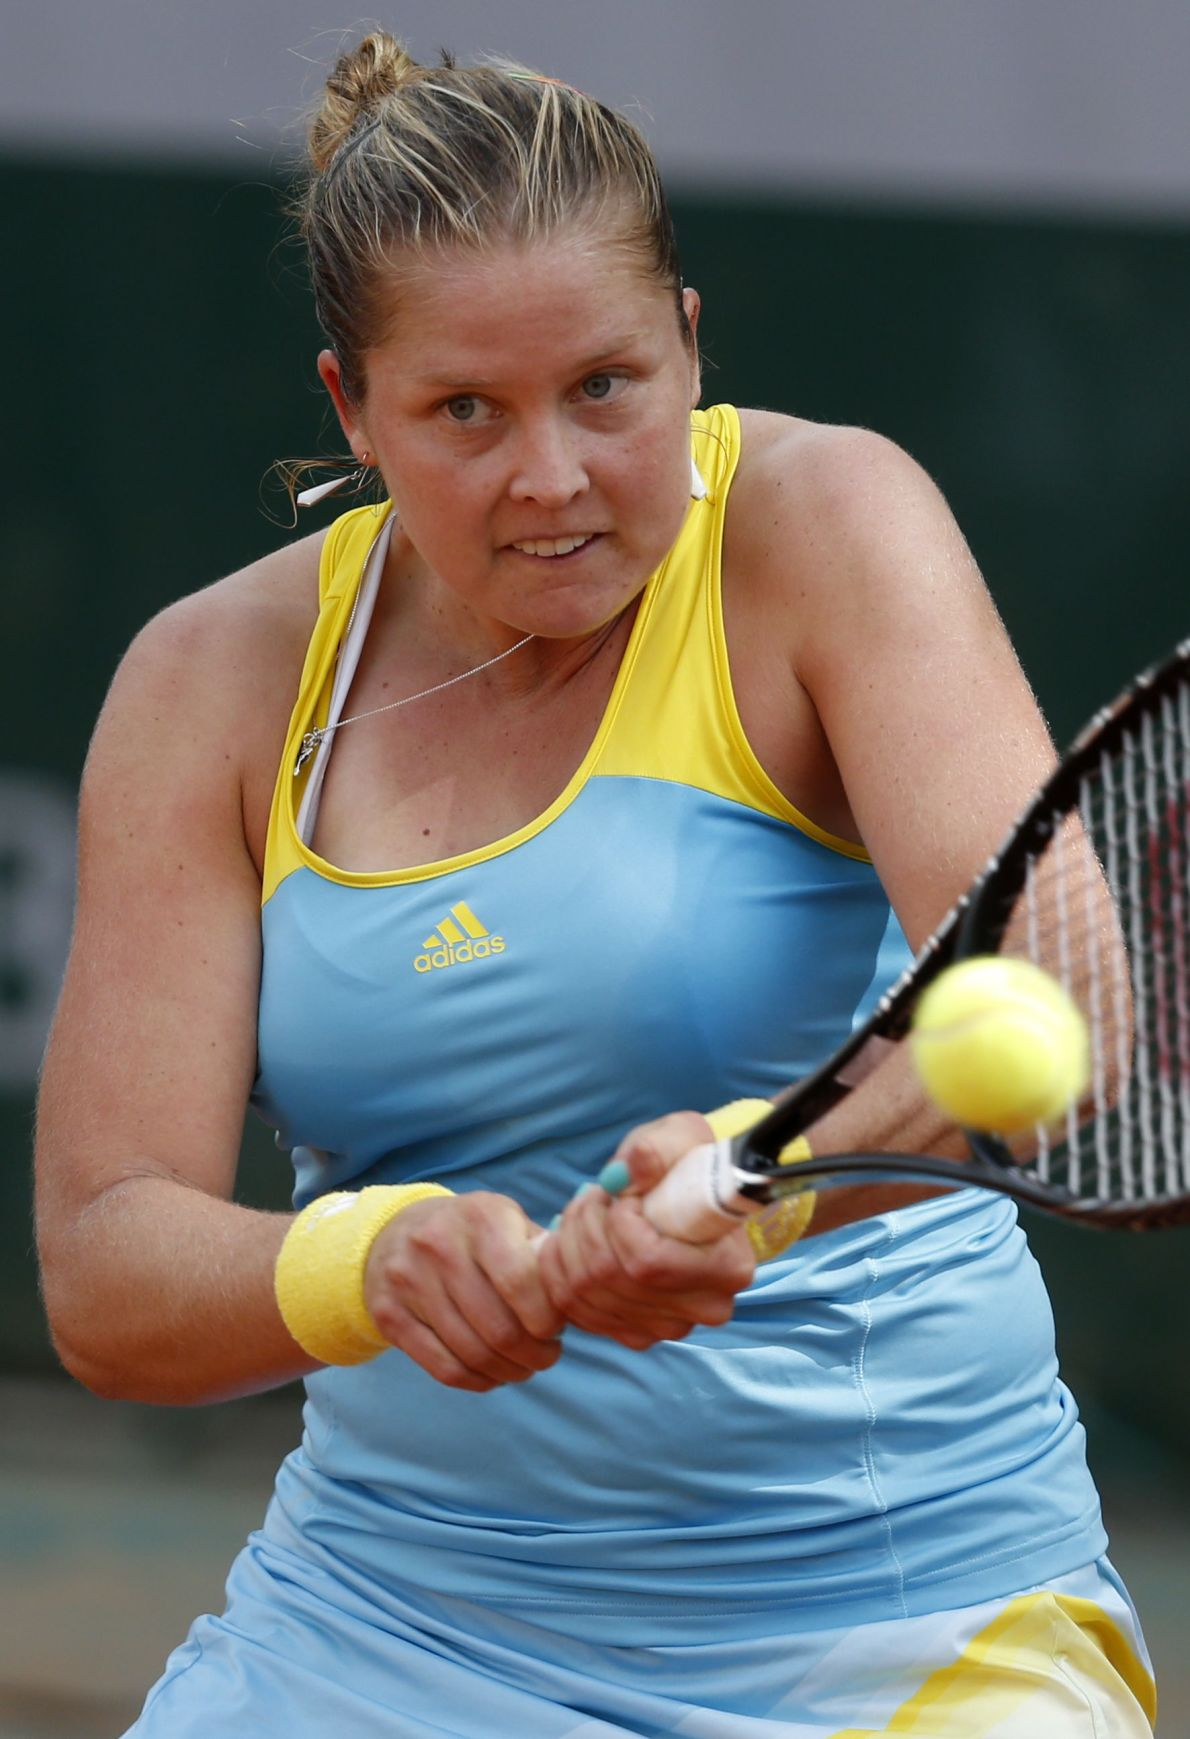 Daniel Island's Shelby Rogers loses in 2nd round of French Open